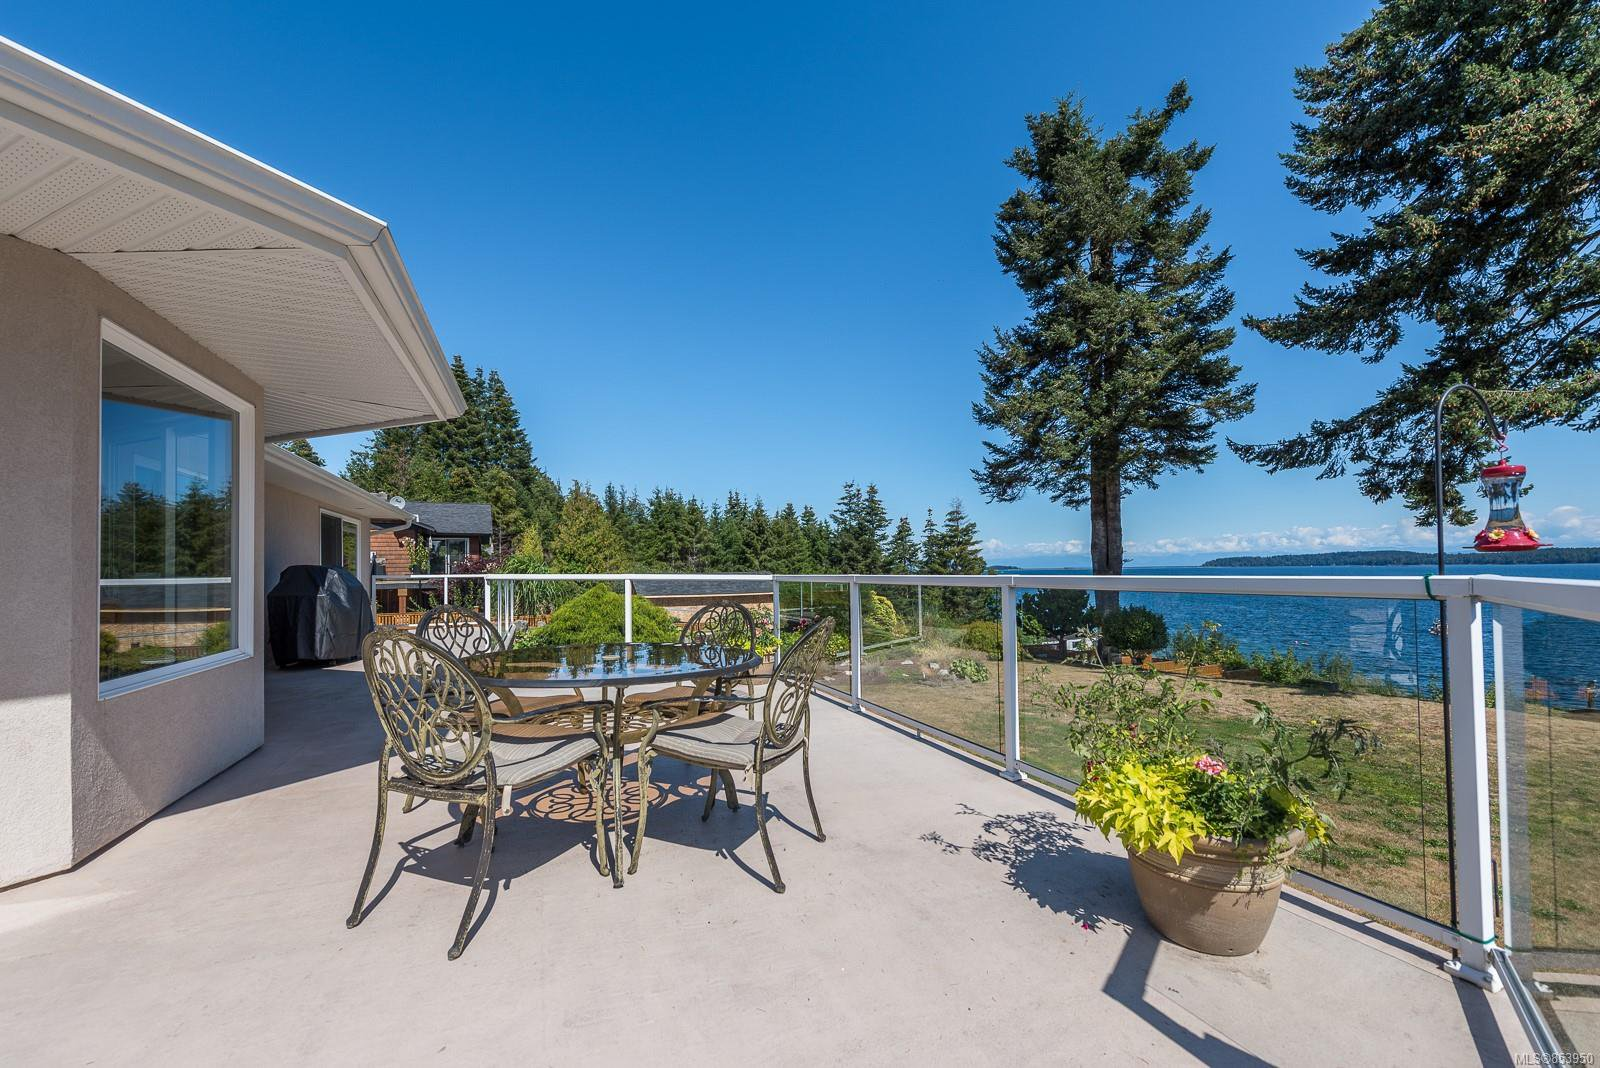 Photo 32: Photos: 5880 GARVIN Rd in : CV Union Bay/Fanny Bay House for sale (Comox Valley)  : MLS®# 853950